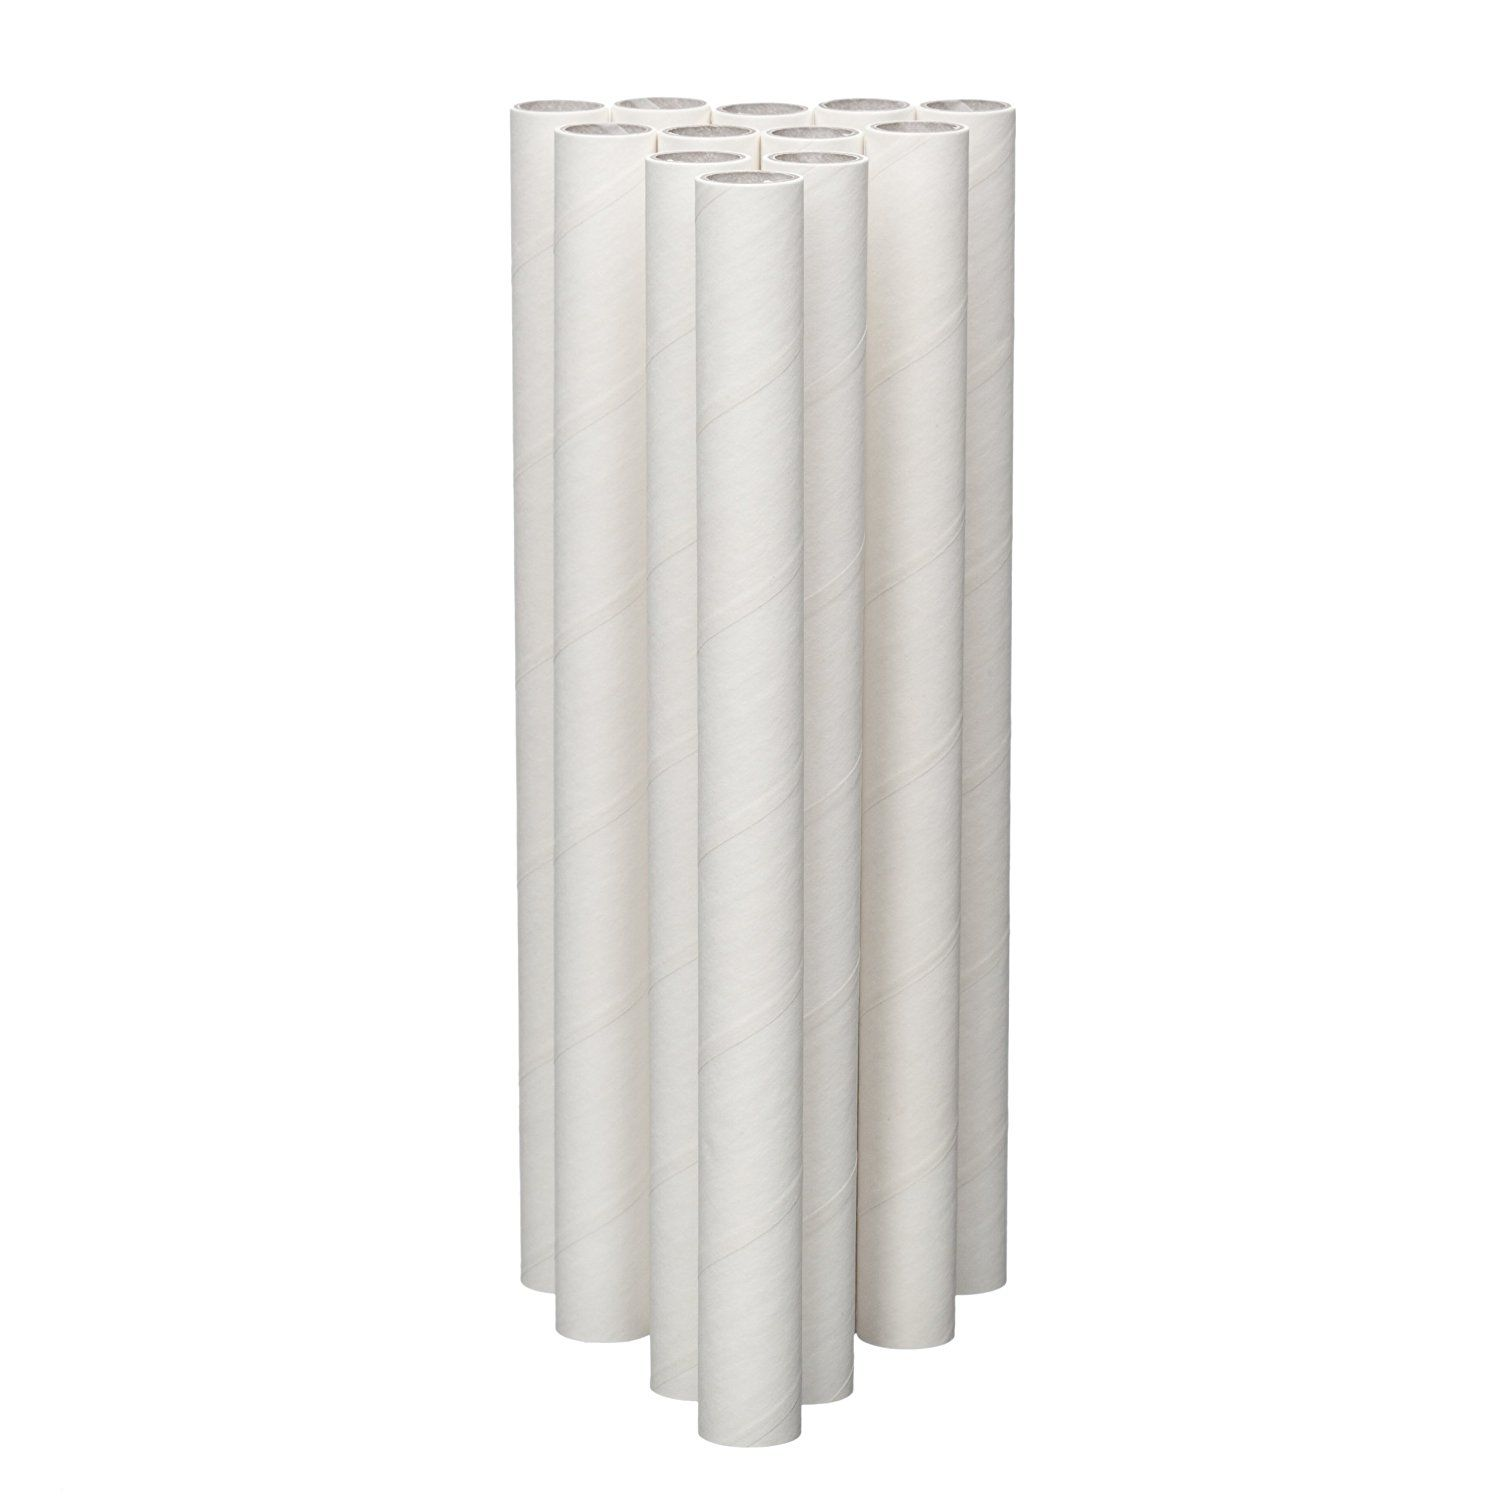 12-Pack 34004 Lady Mary//Ateco 4-Inch Parchment Coated Paperboard Dowels